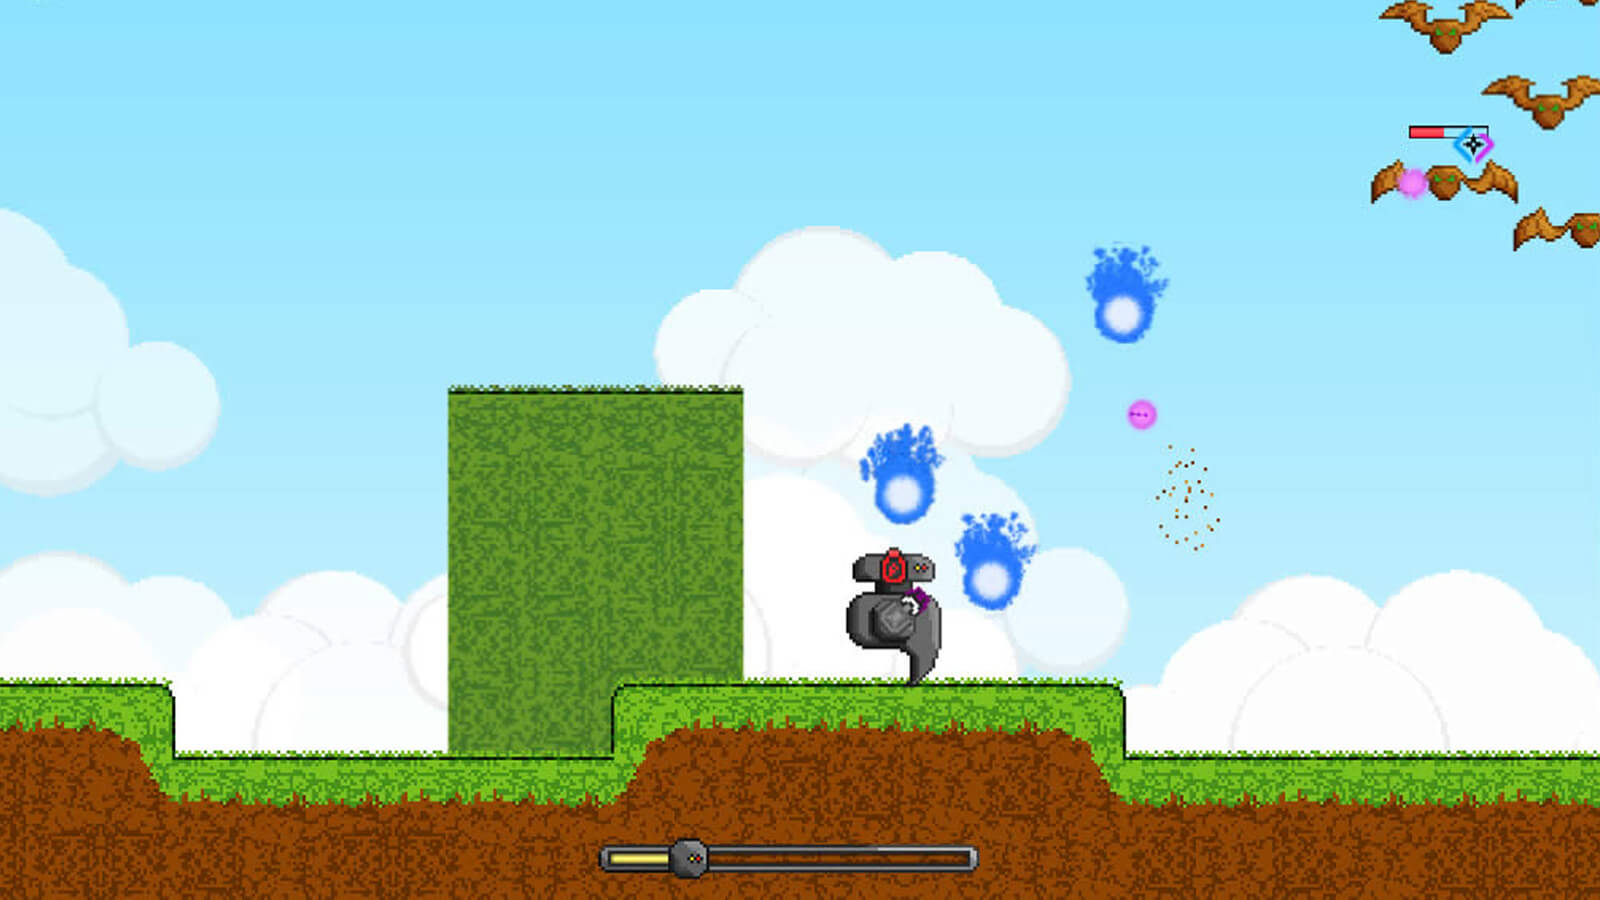 The player's robot character fires magenta bullets as enemy bats shoot back blue balls of fire